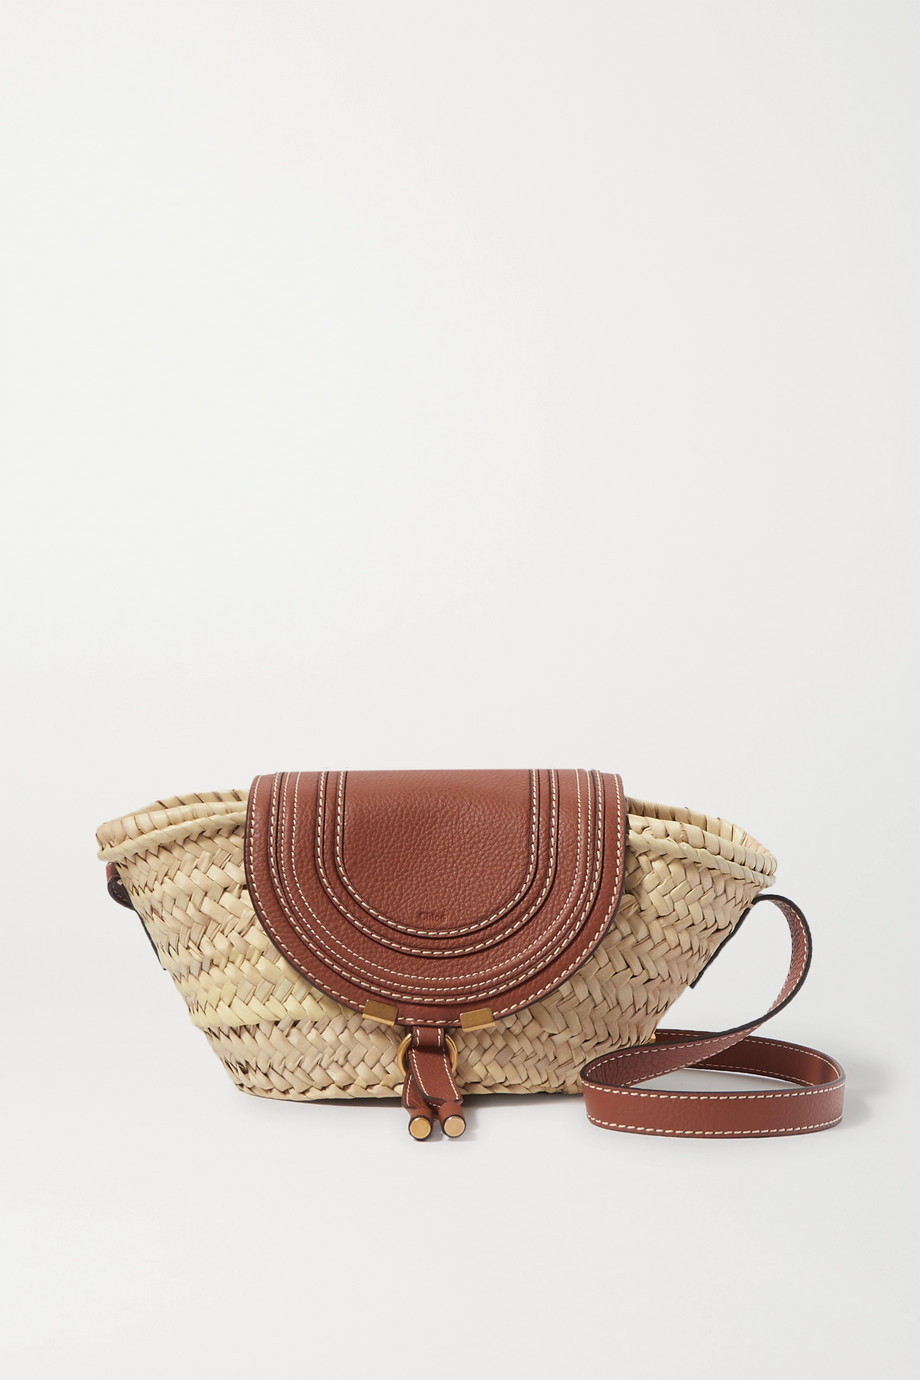 Chloé Marcie small straw and textured-leather shoulder bag